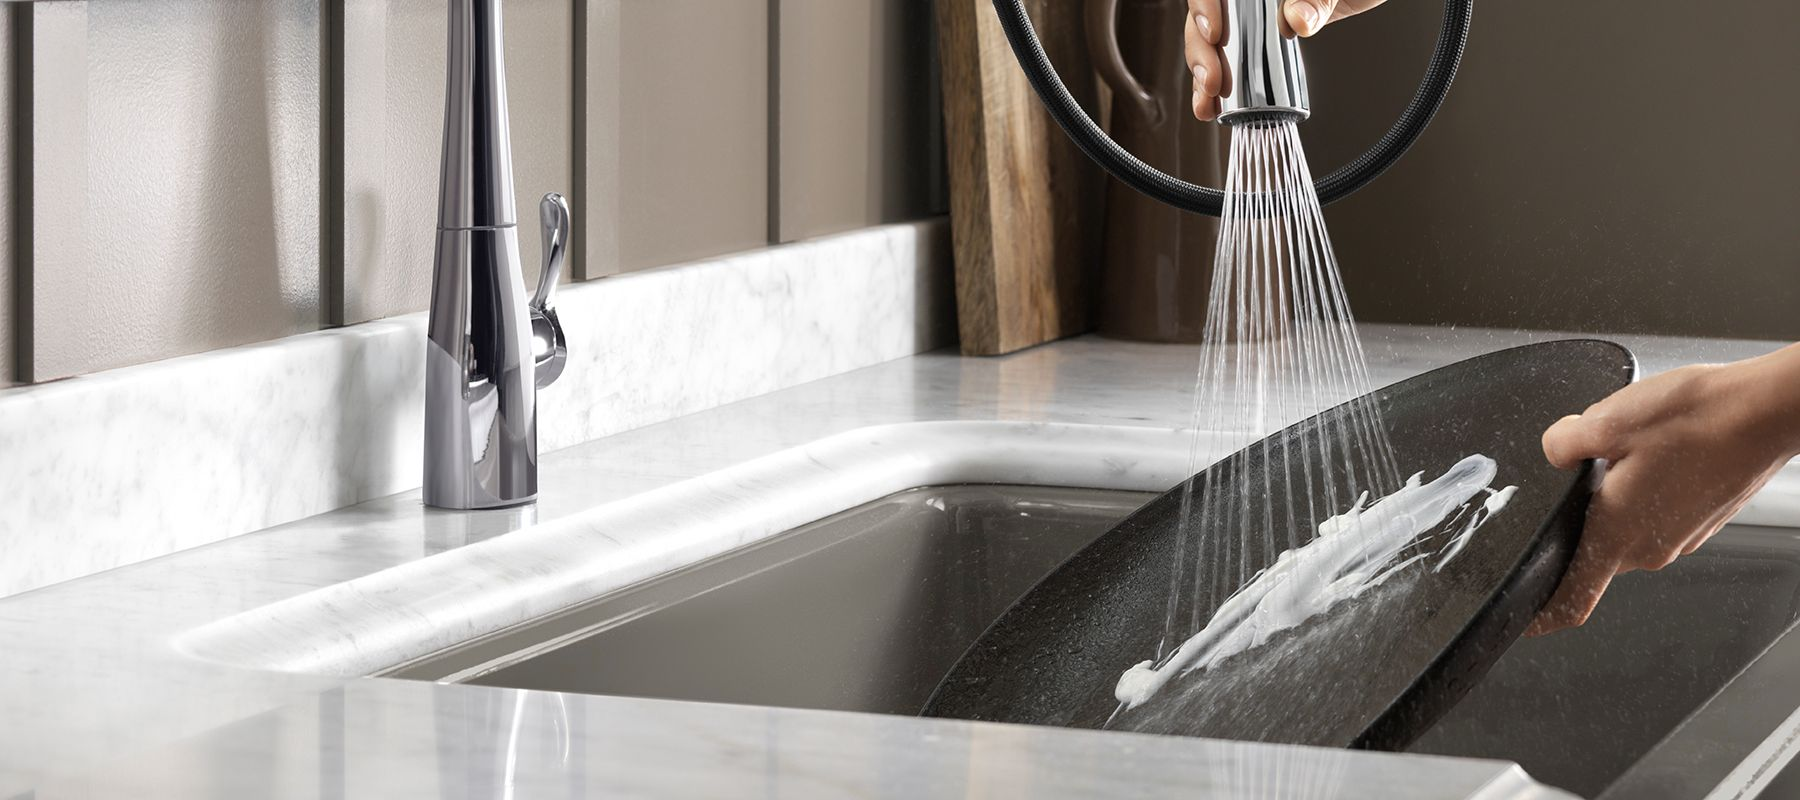 kitchen sink faucets | kitchen faucets | kitchen | kohler